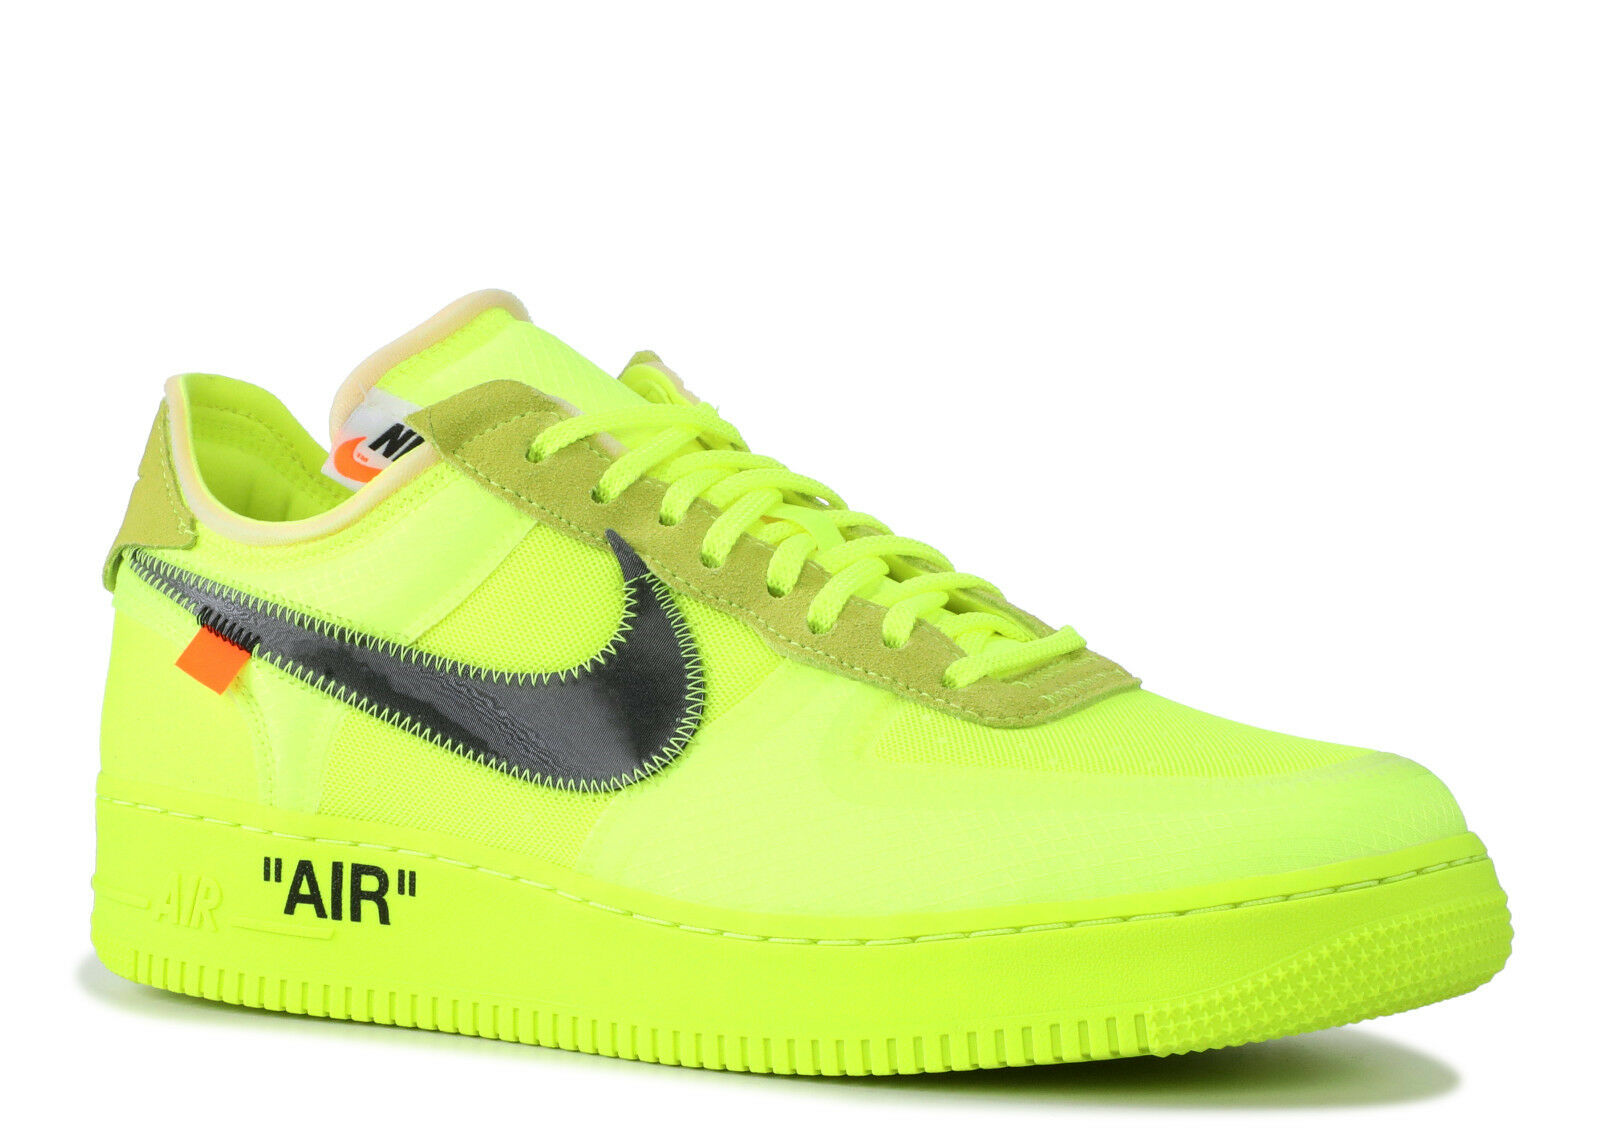 Nike The 10  Nike Air Force 1 Low 'Off White' - Ao4606-700 - Size 9